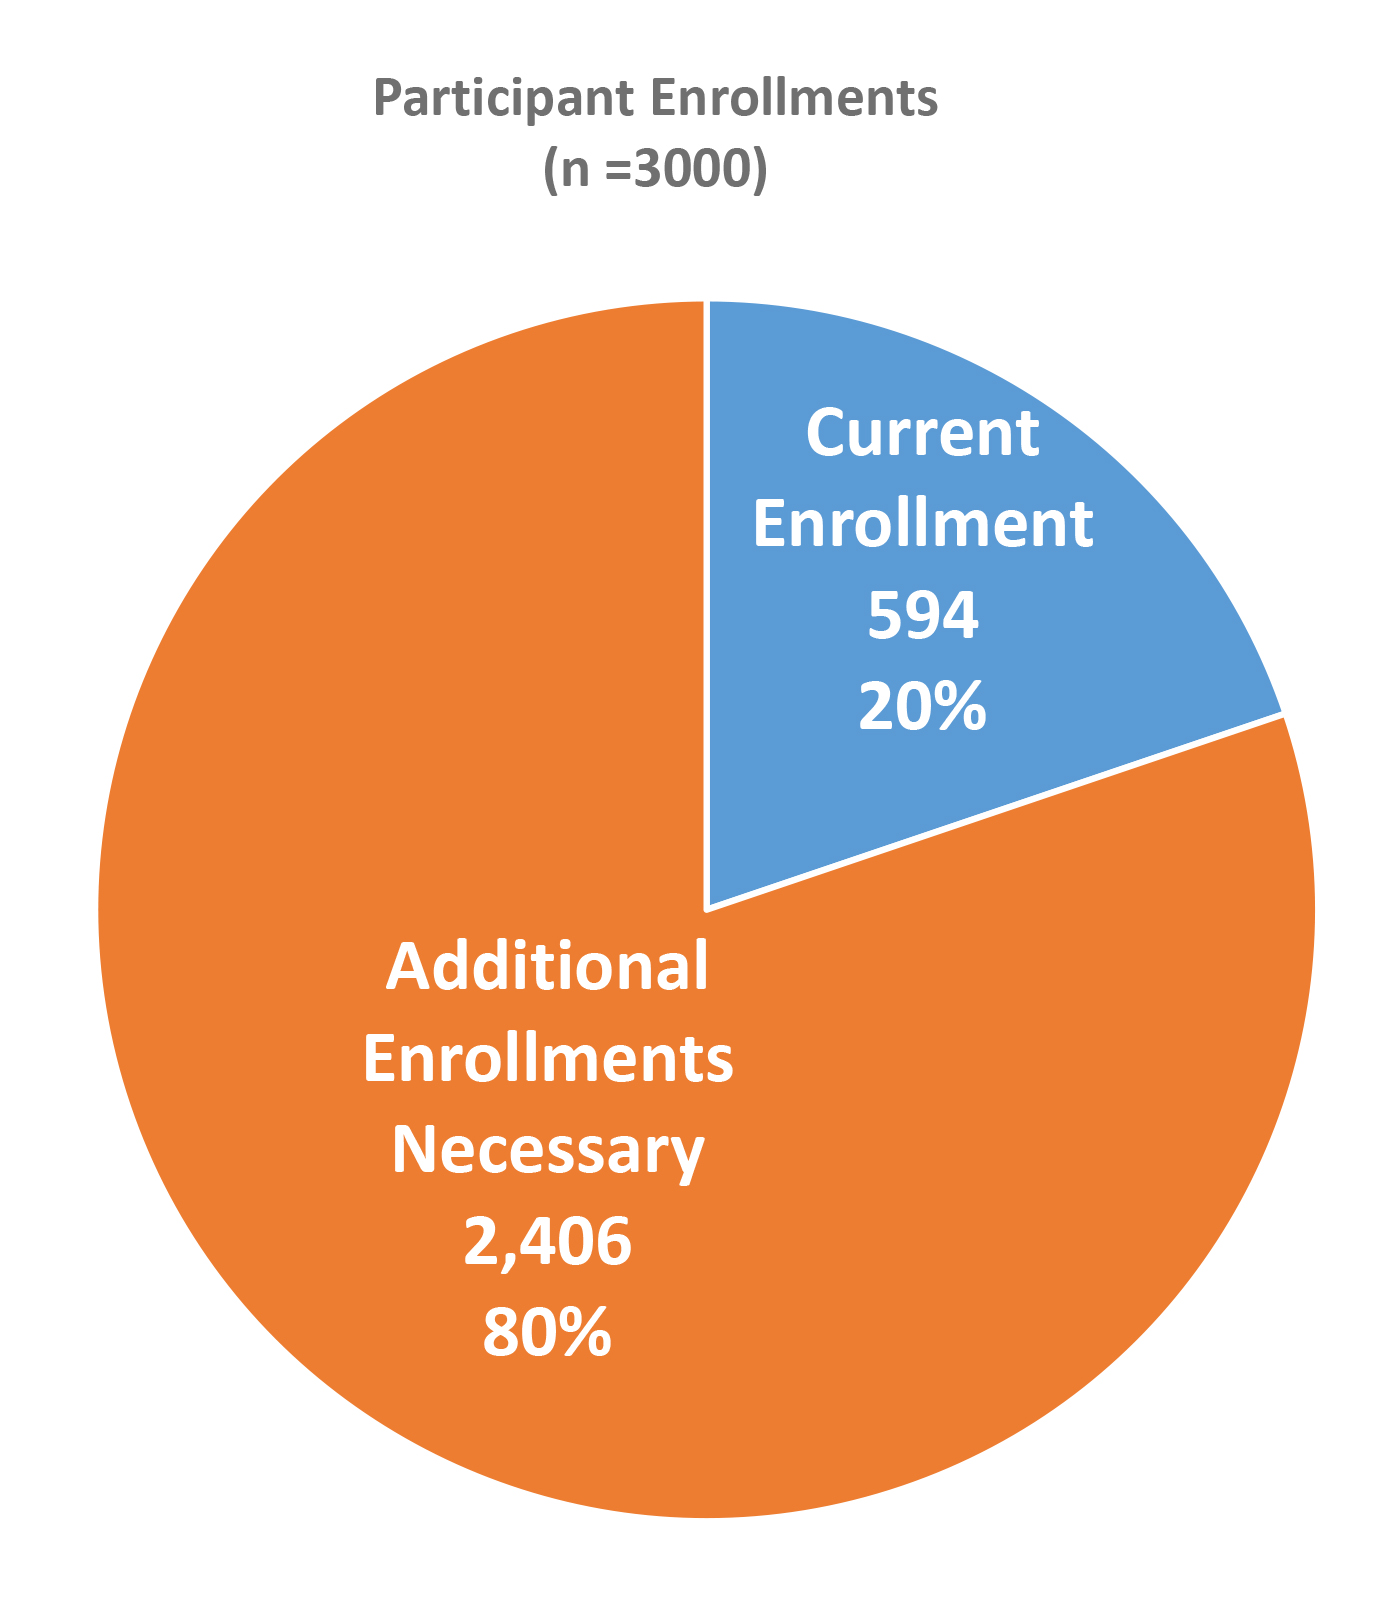 Participant enrollment as of 5-22-20